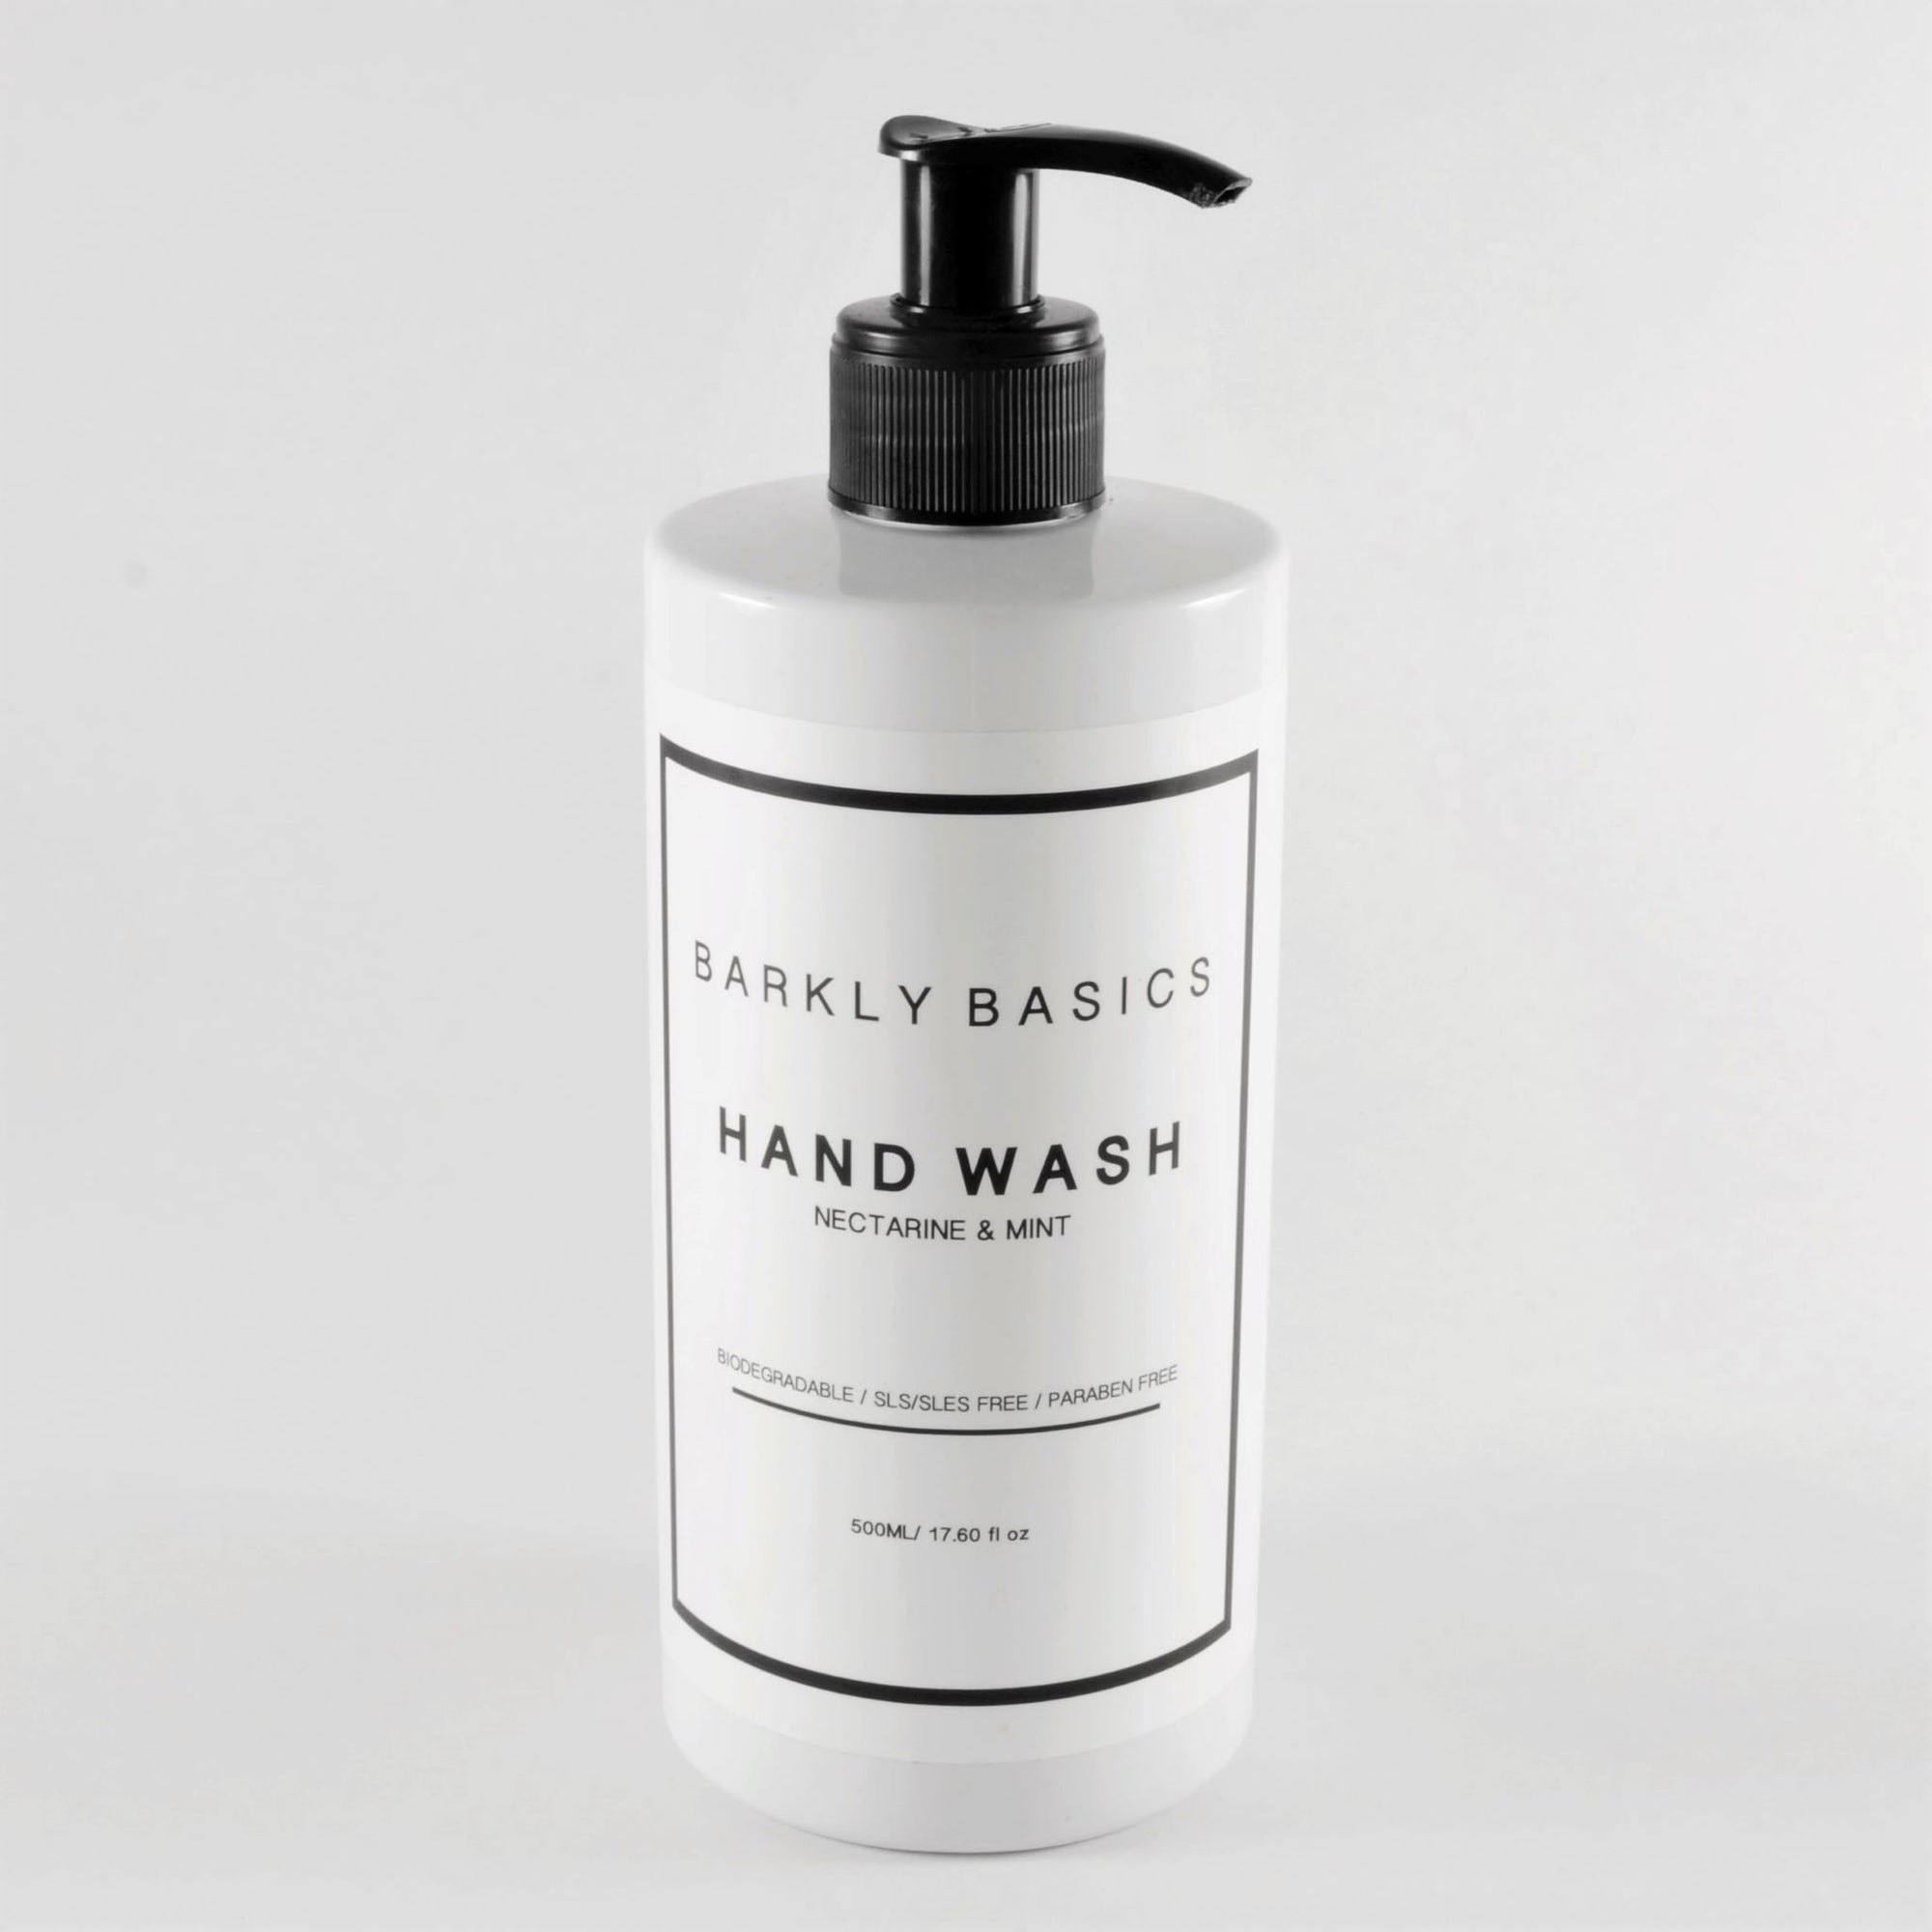 Hand Wash | Nectarine & Mint